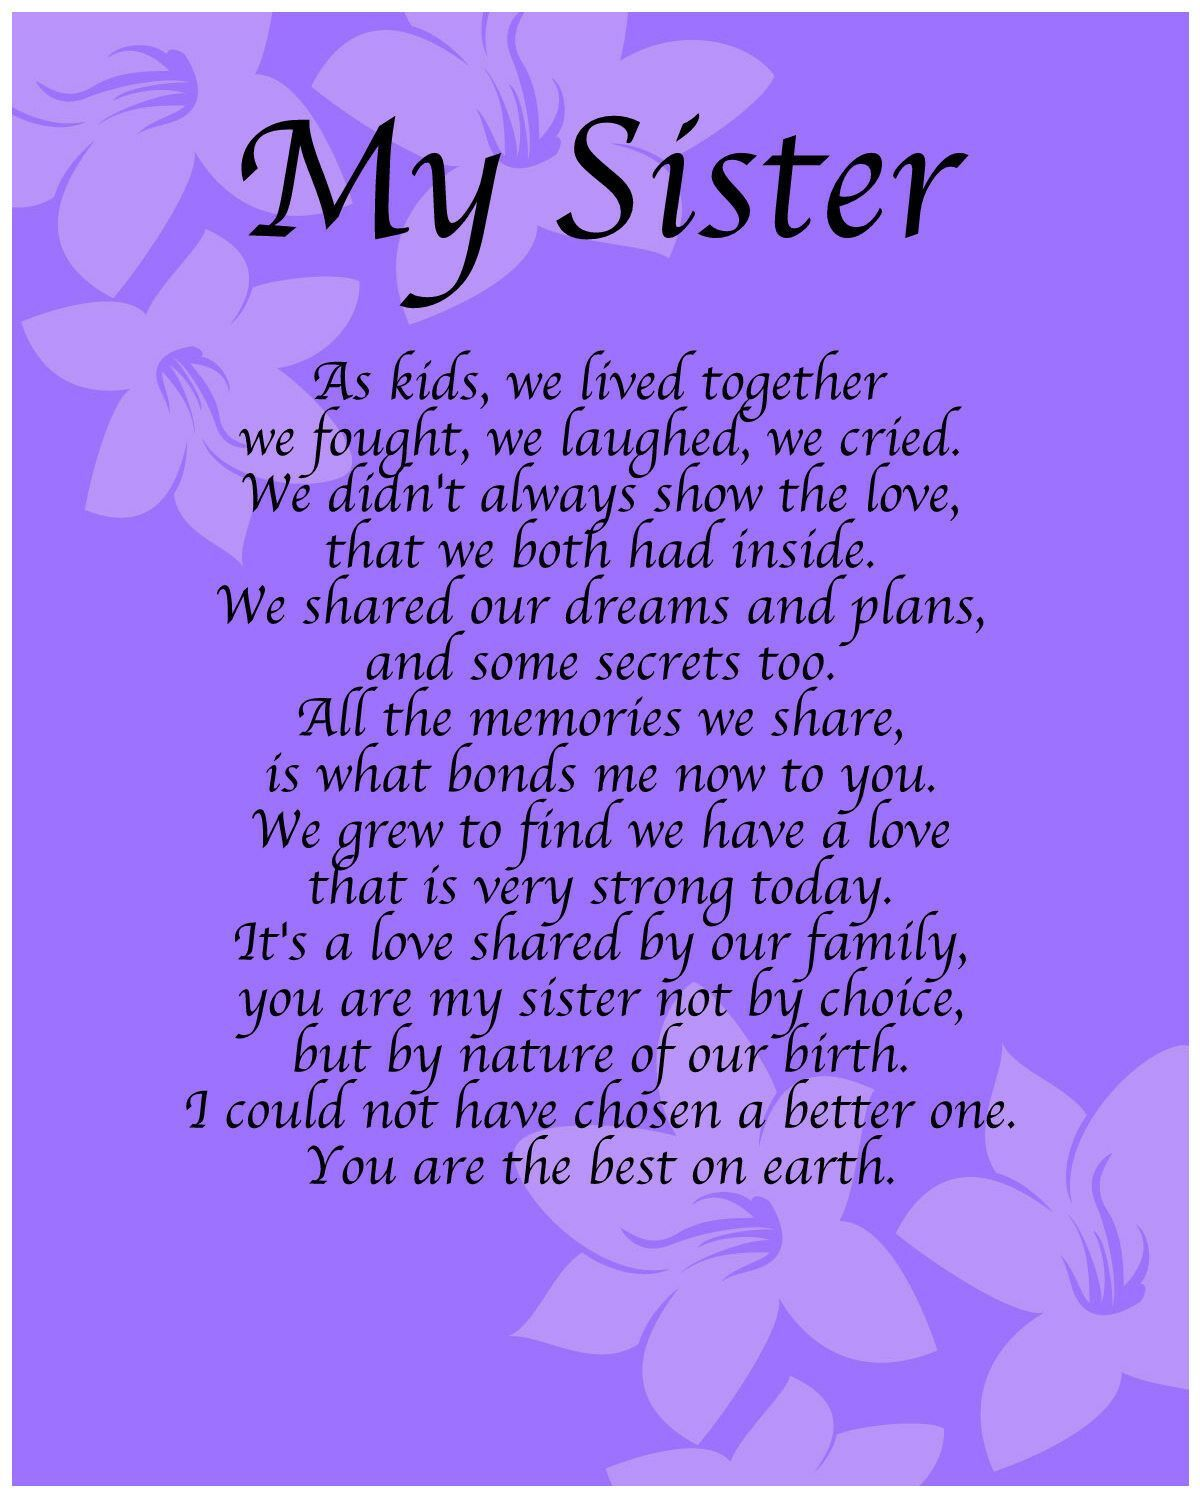 Details about Personalised My Sister Poem Birthday